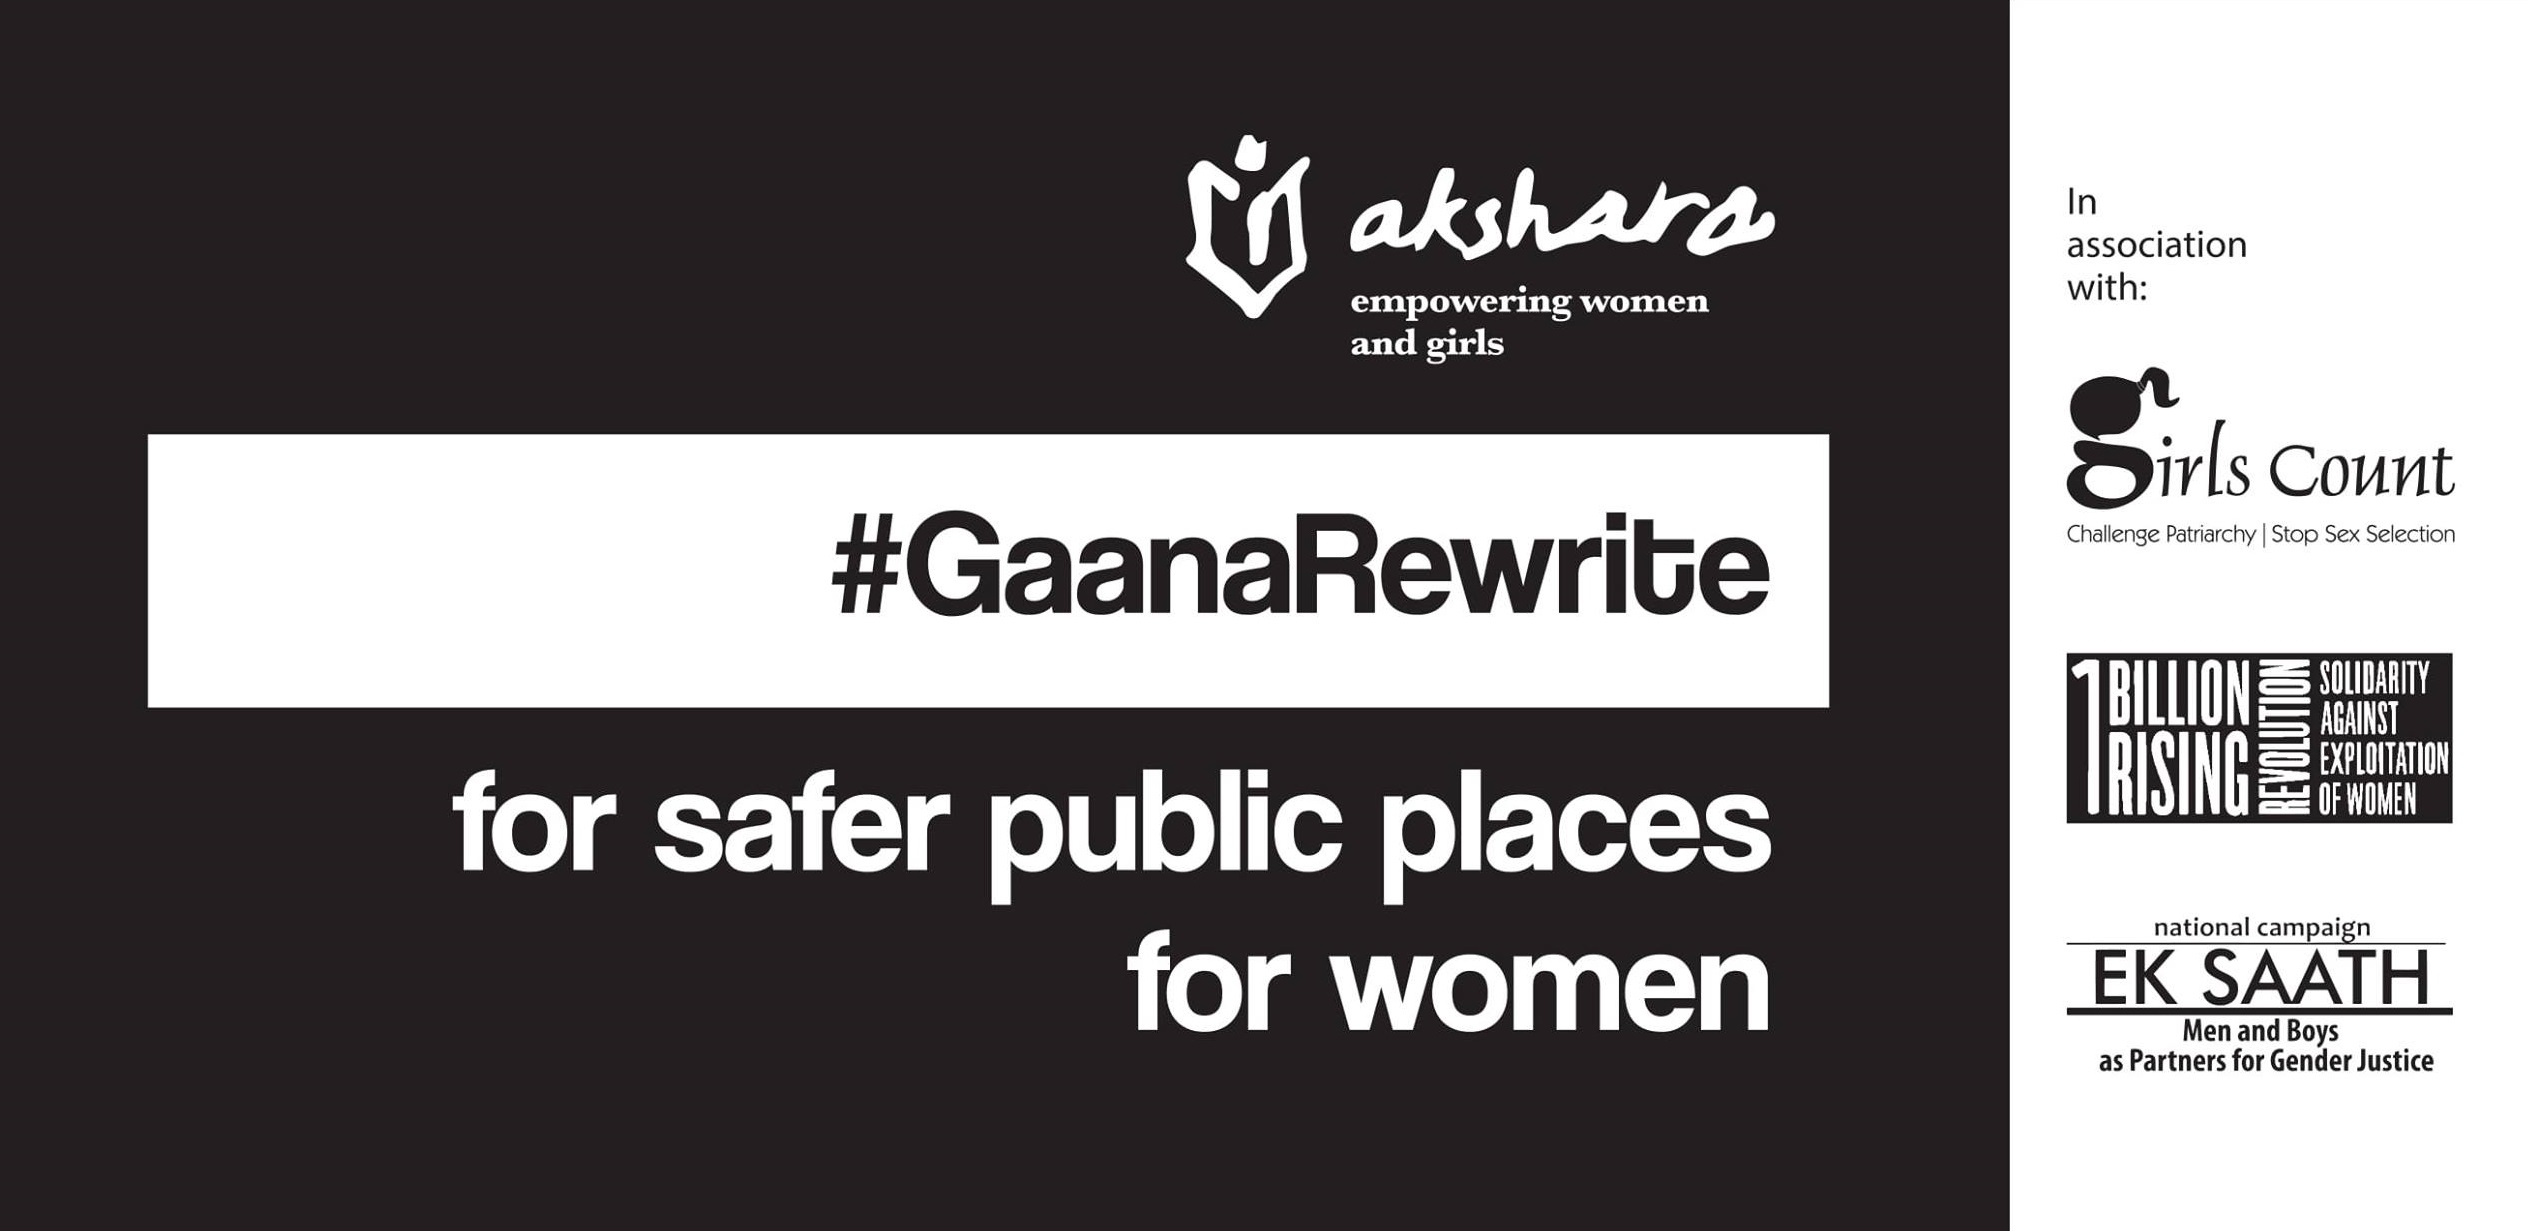 #GaanaRewrite: Patriarchal Bollywood Songs Set to Gender-Sensitive Tunes